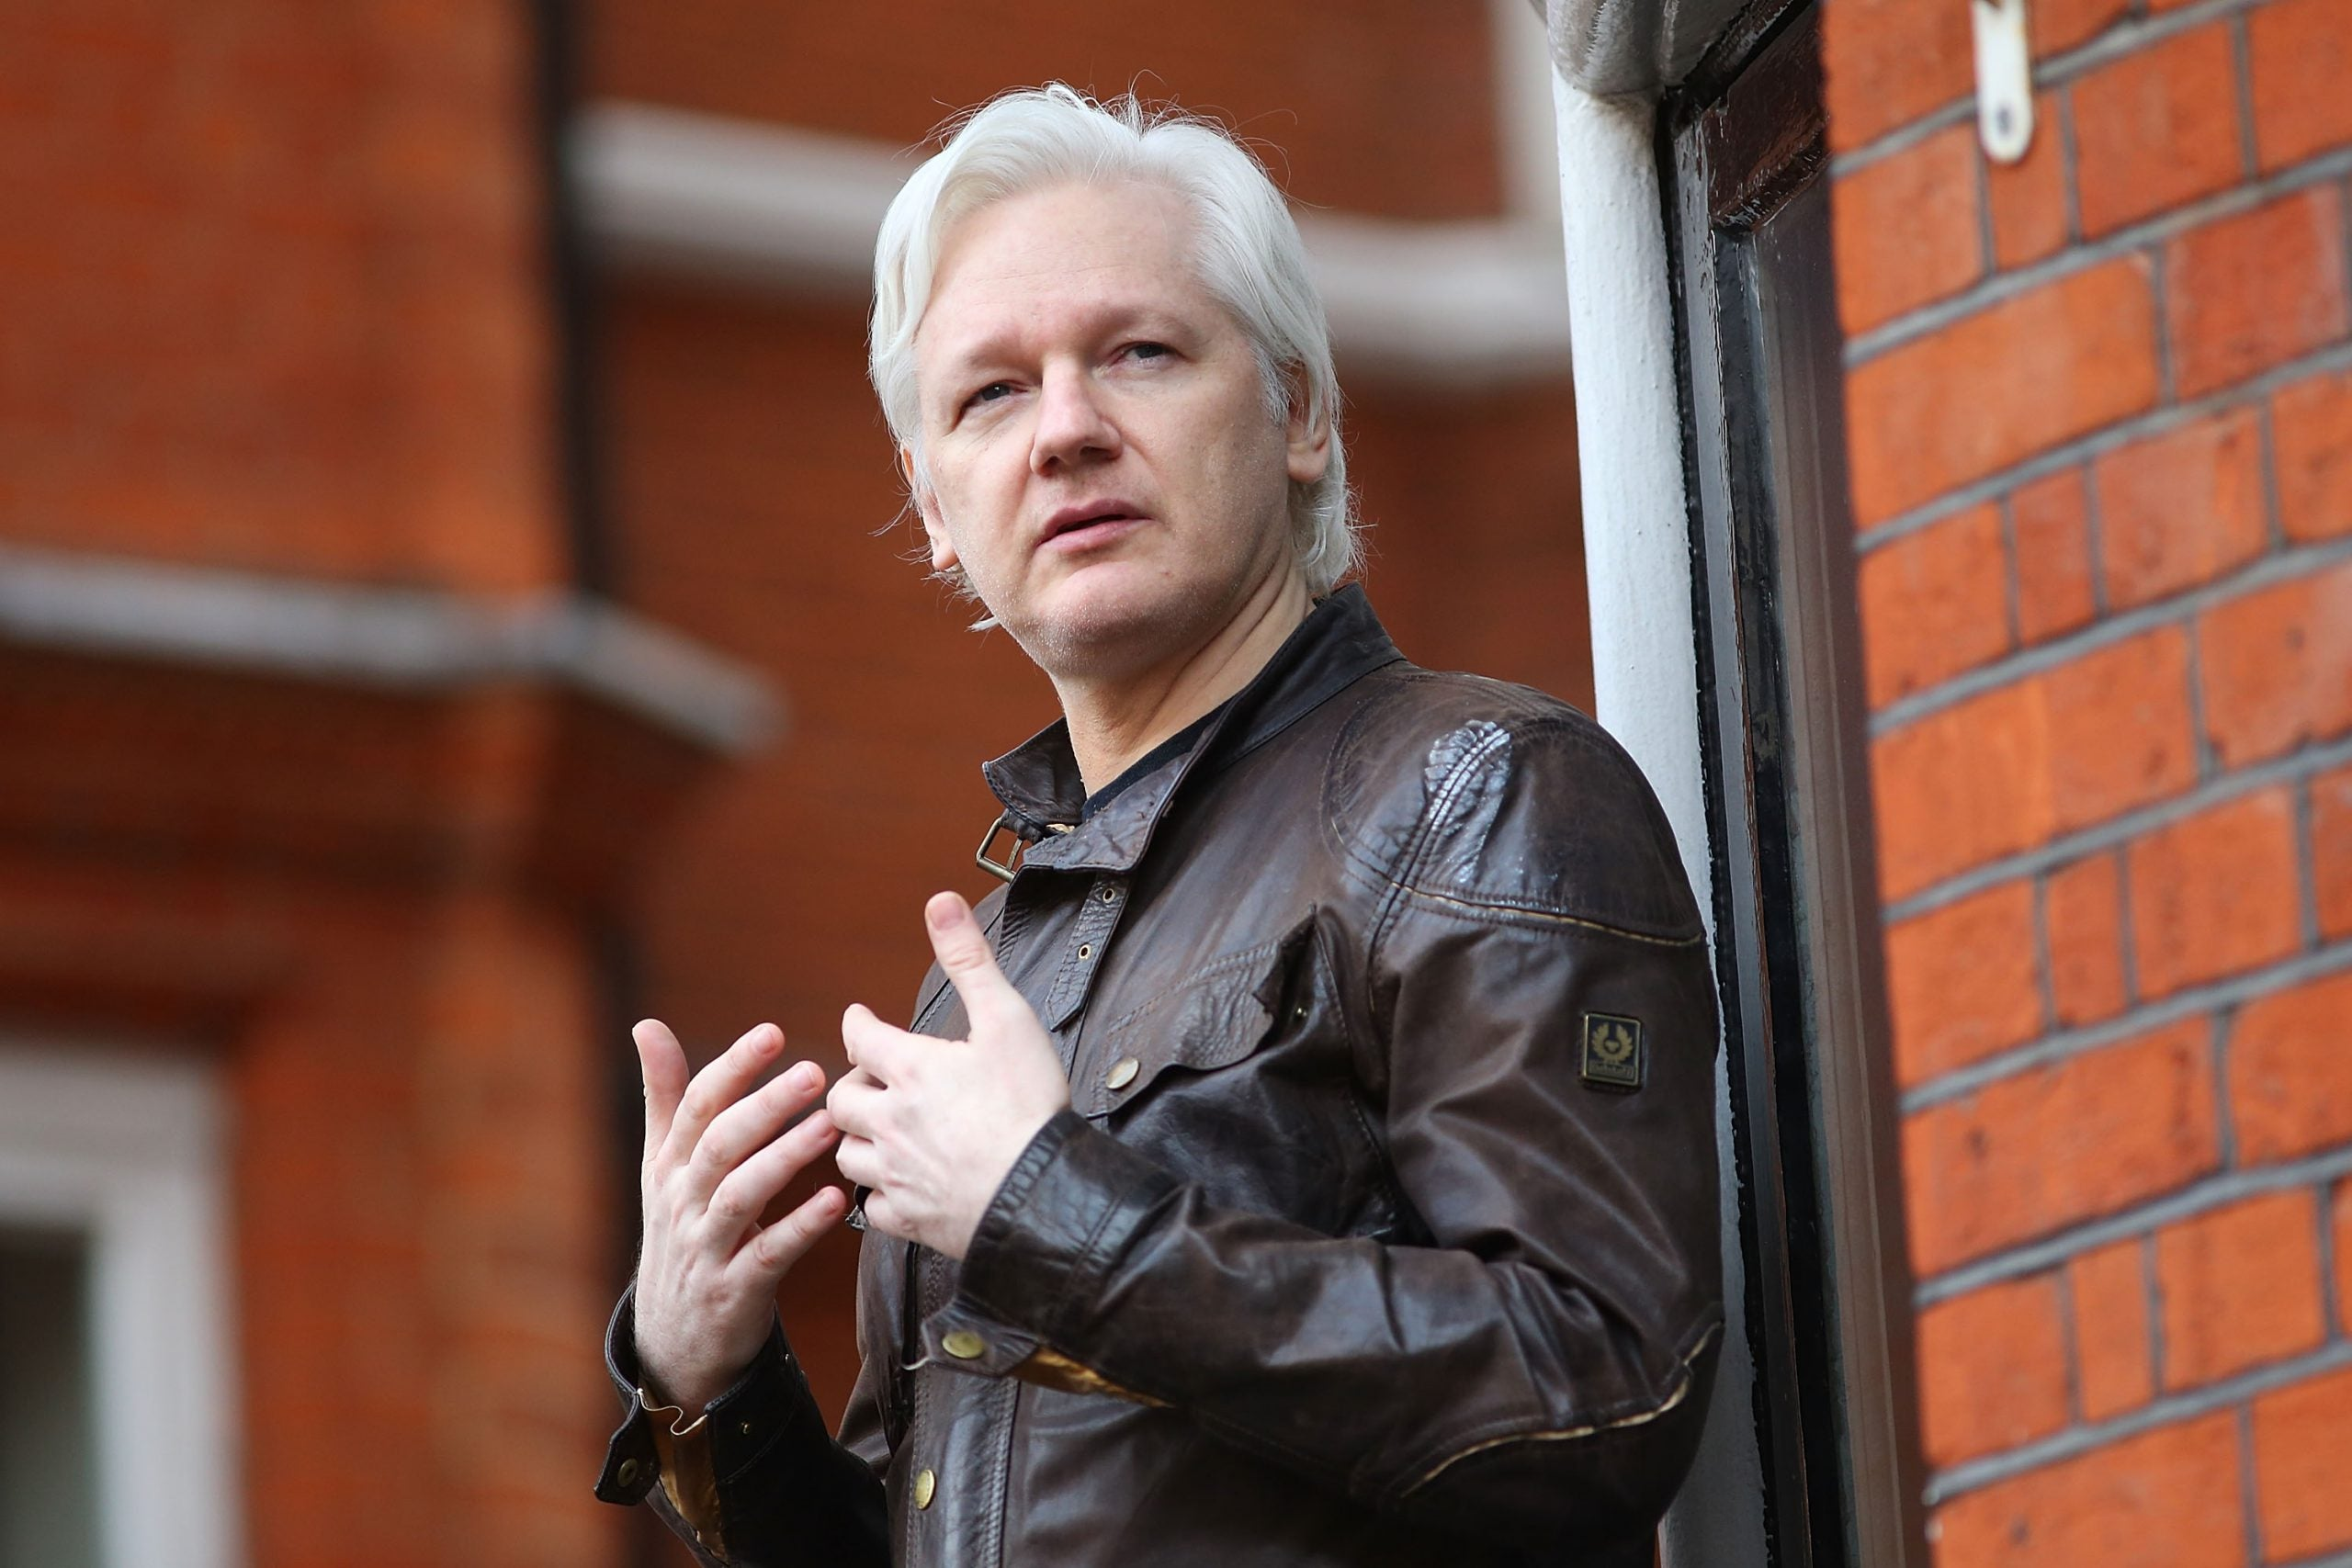 From the NS archive: Julian Assange, the man who wasn't there